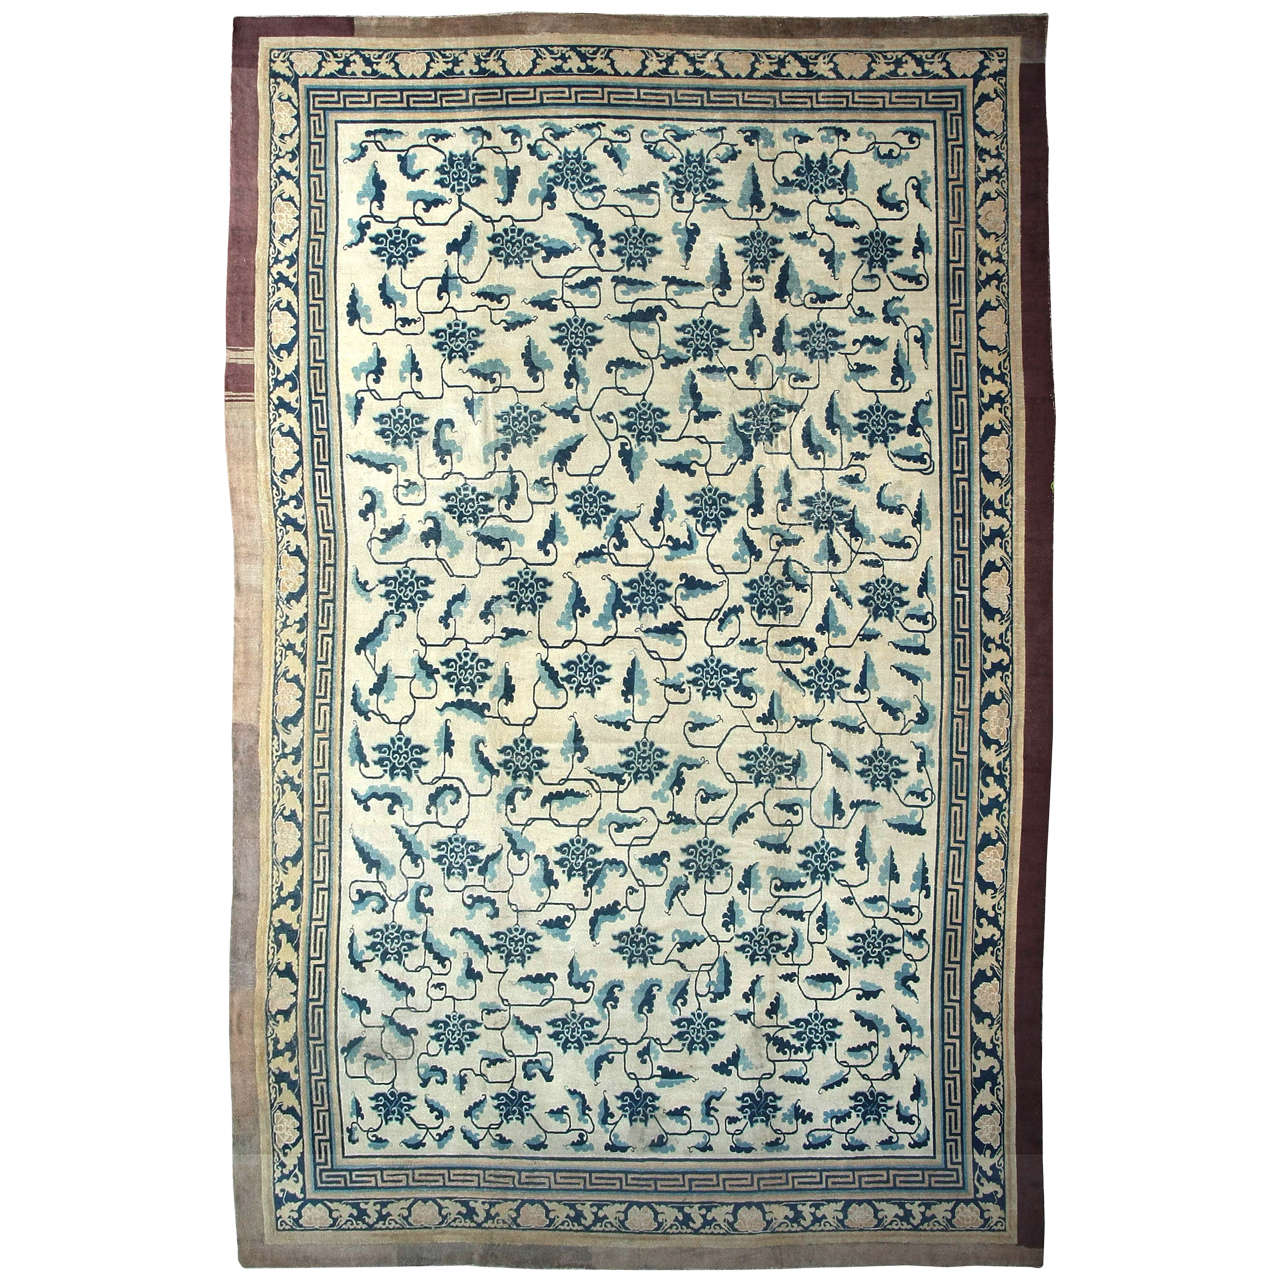 Early Chinese Carpet with Stylized Lotus Flowers and Leaf Stems